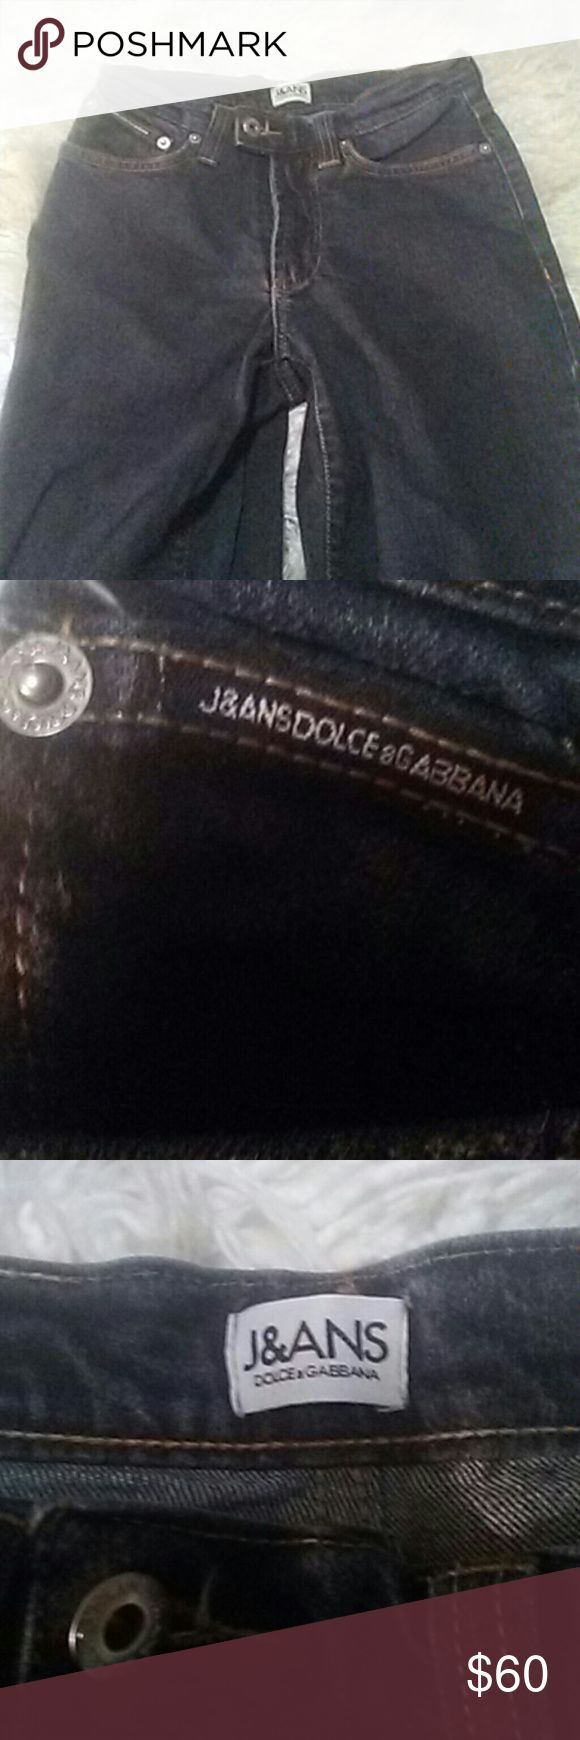 Dolce Gabbana jeans These a beautiful Dolce Gabbana jeans 100% authentic bought them at Nordstrom's a few years back only wore them a couple times they're very beautiful and they're not D&G the cheaper ones the Dolce & Gabbana the more expensive ones they are a size 26 European and they are in fantastic condition they look new. Dolce & Gabbana Jeans Straight Leg